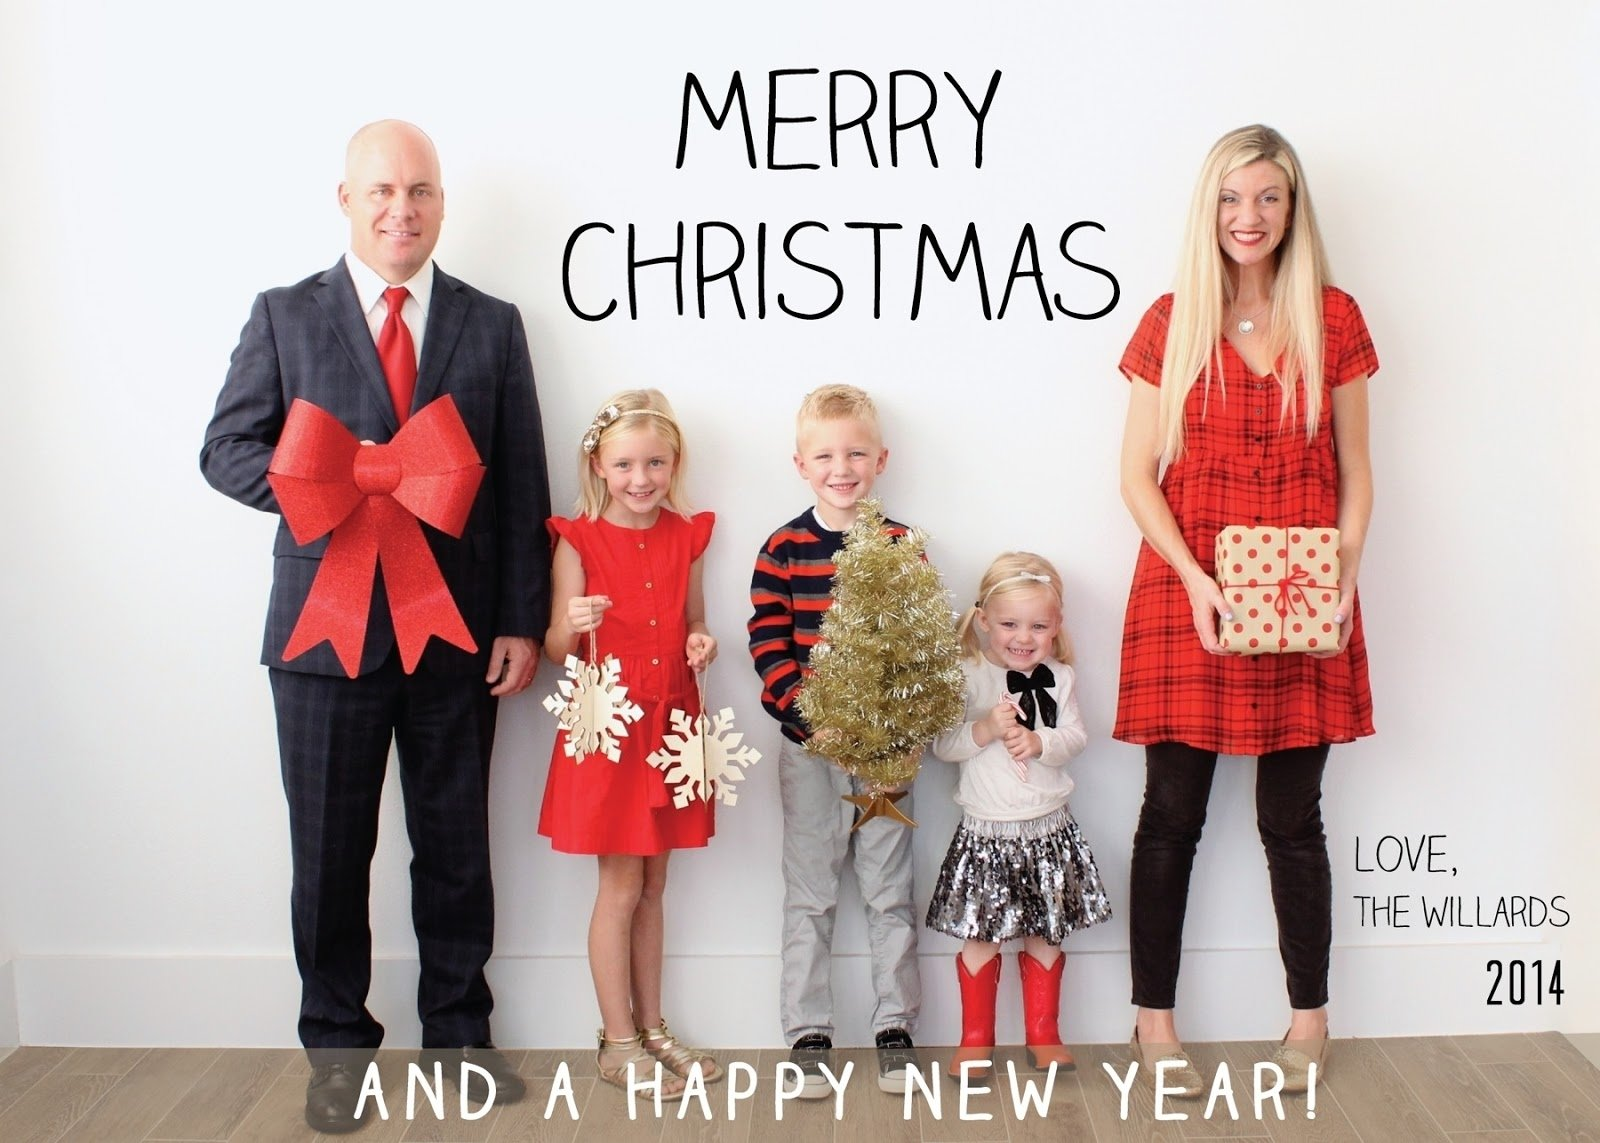 10 Unique Christmas Card Family Photo Ideas a merry 2014 christmas card from our family to yours made everyday 9 2020